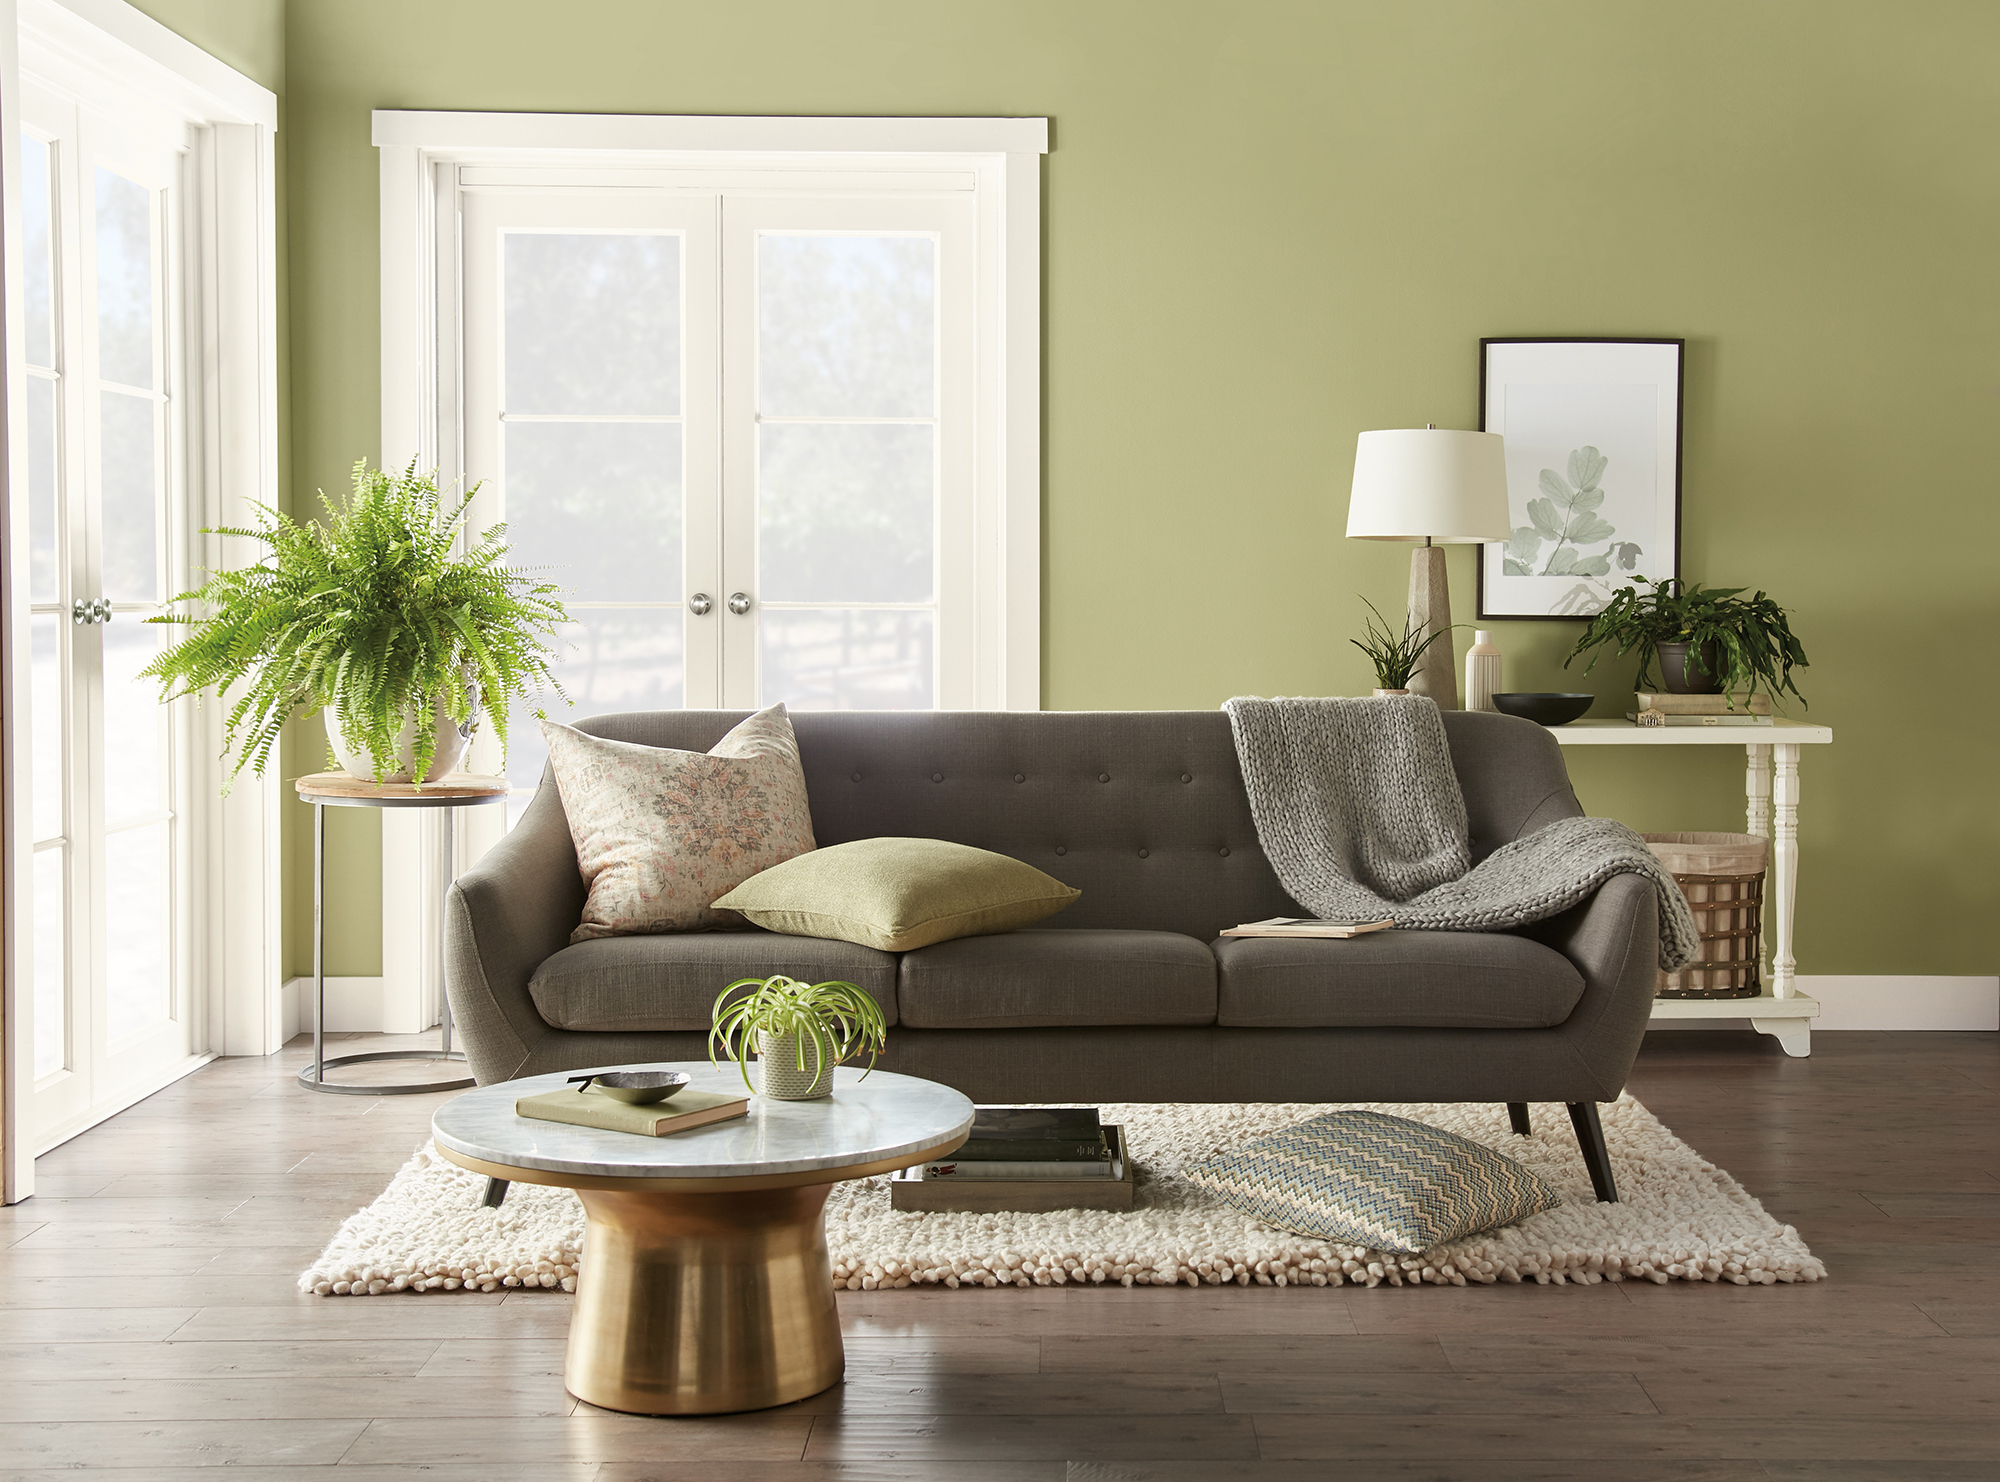 popular paint colors 2020